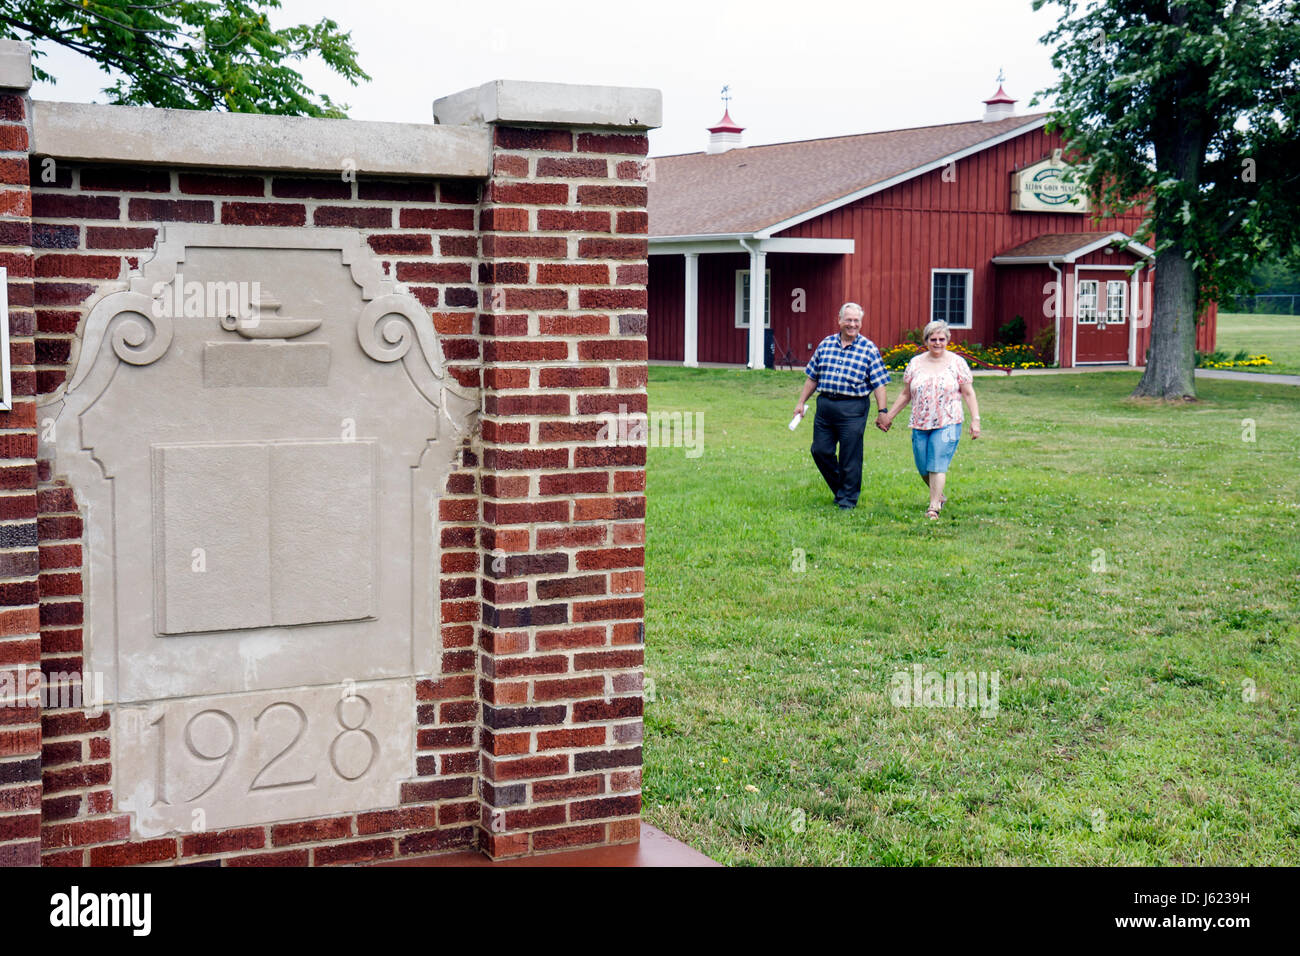 Indiana Portage Countryside Park Alton Goin Historical Museum regional history heritage man woman couple senior - Stock Image